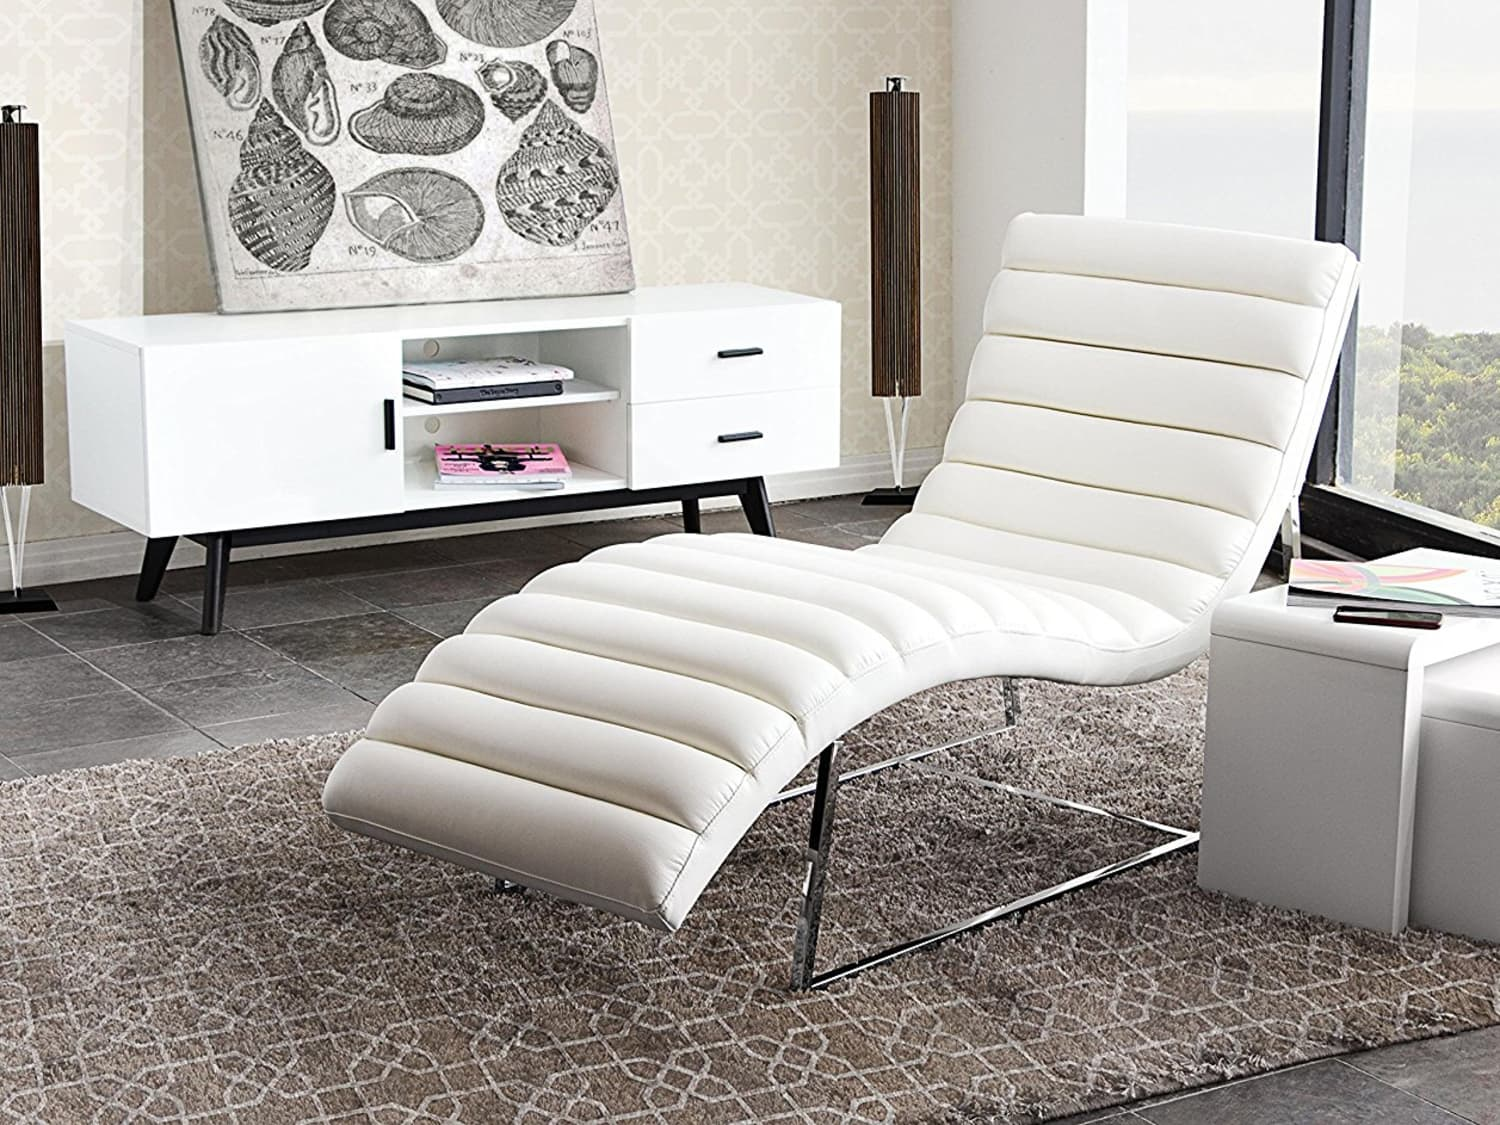 12 Of The Best Looking Modern Chaise Lounges Apartment Therapy